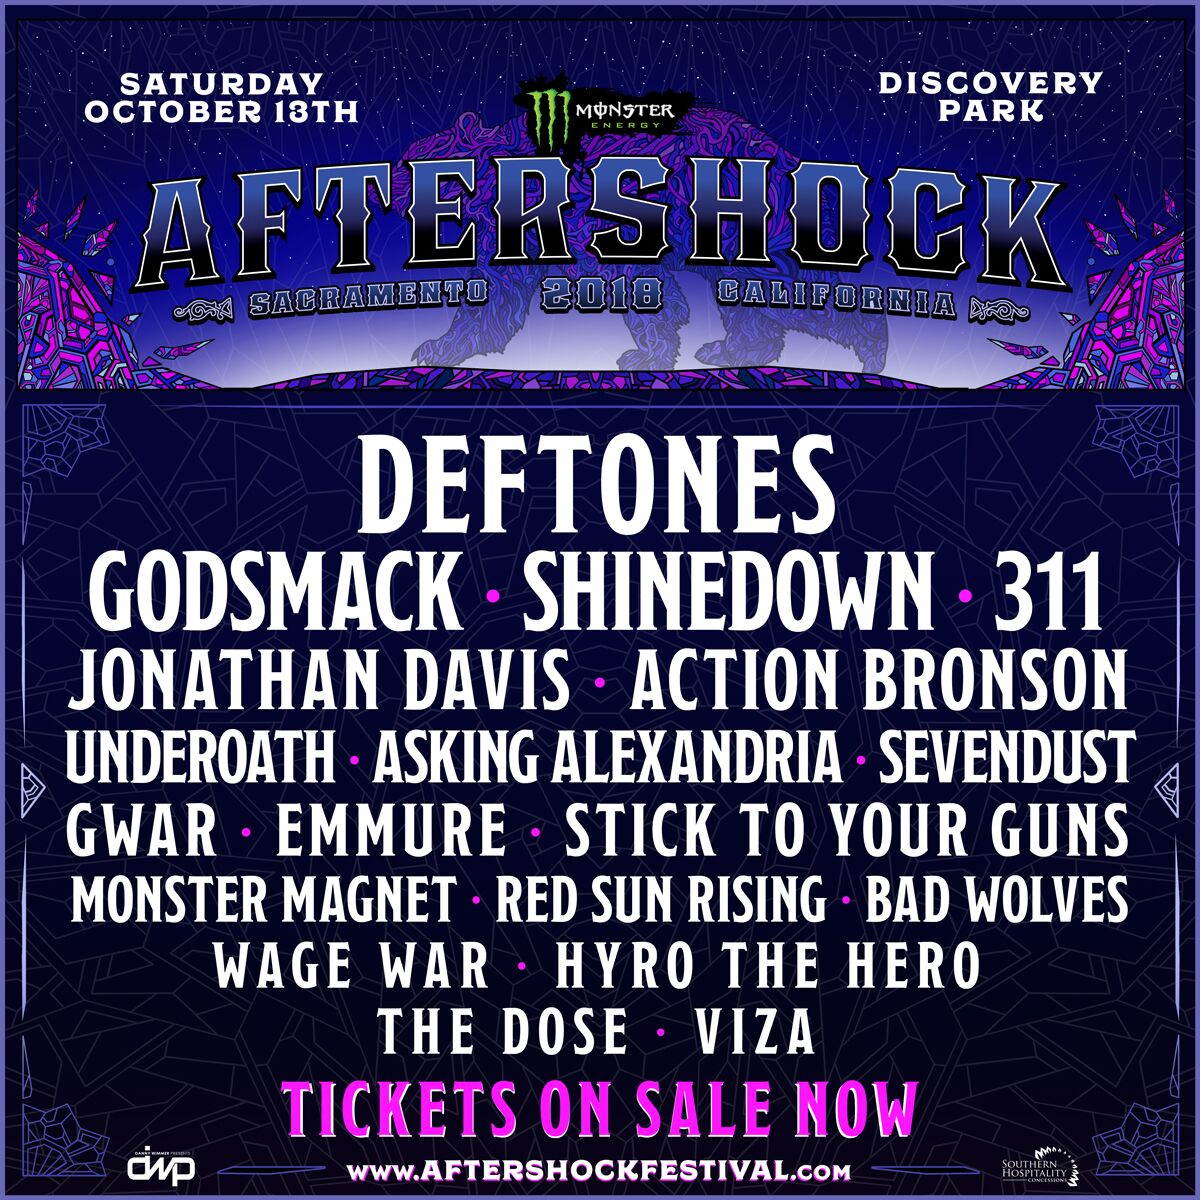 Win Aftershock Weekend Tickets